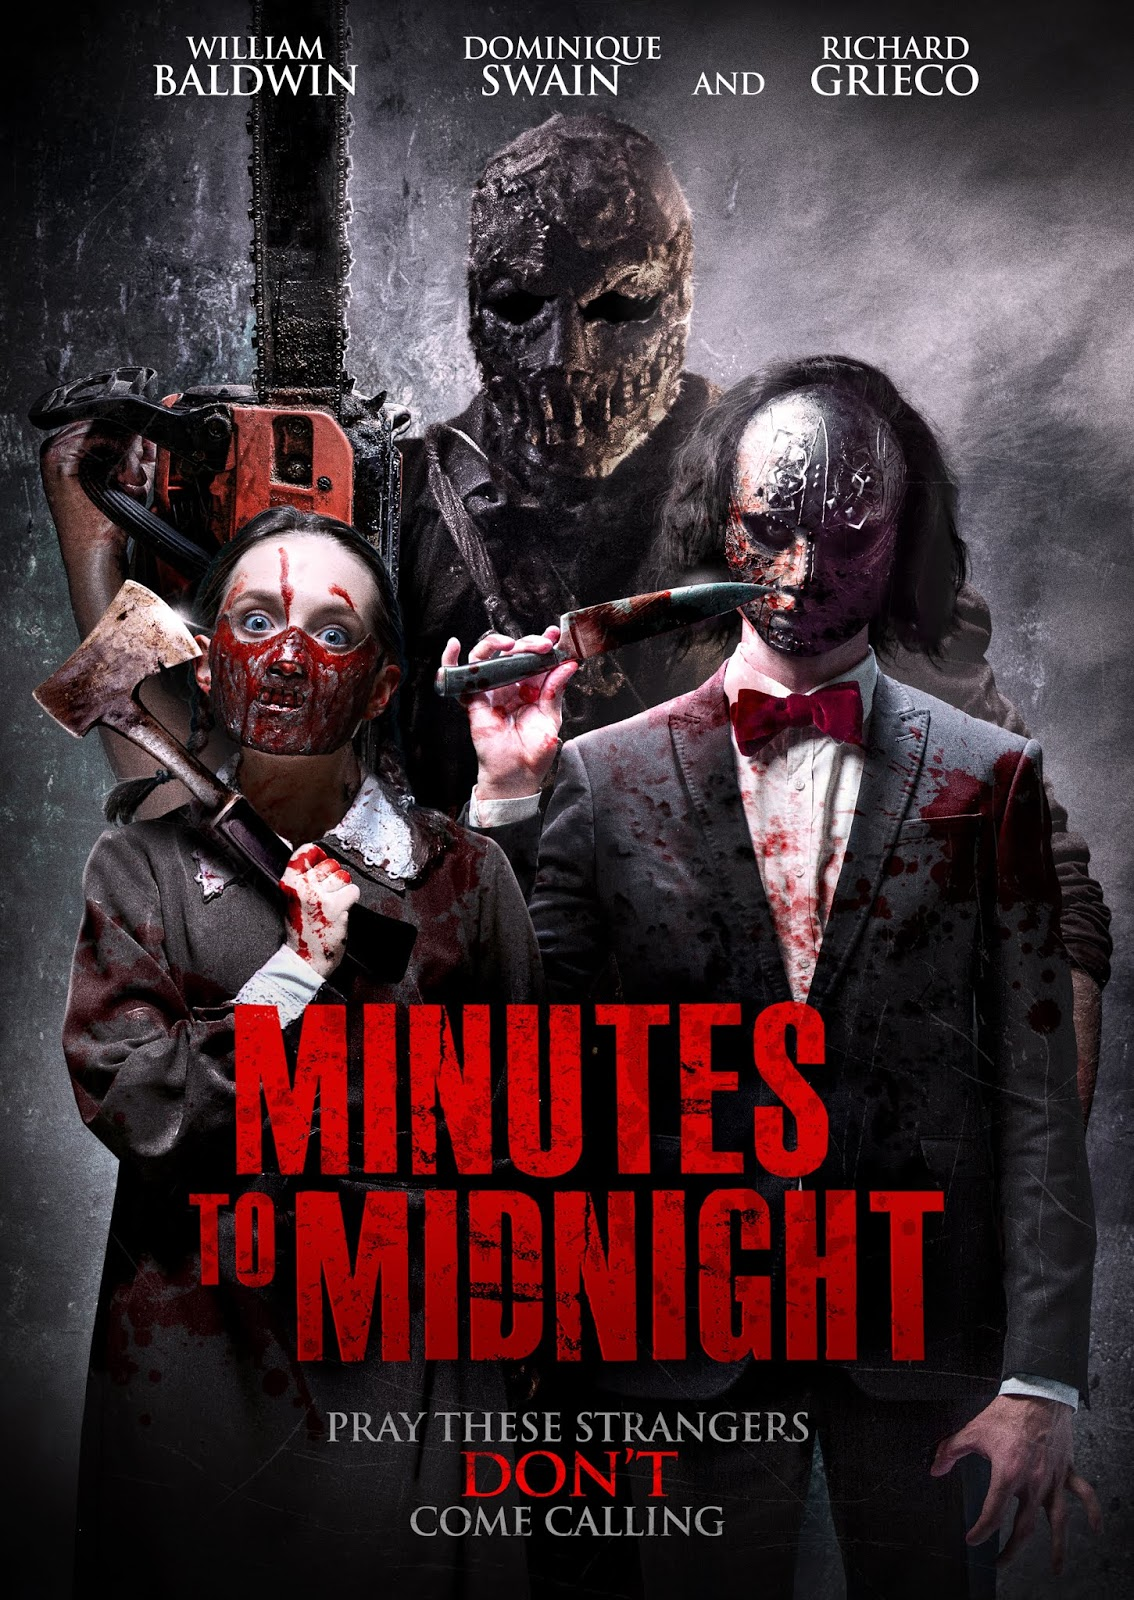 Trailers: The Upcoming Horror Film Minutes To Midnight